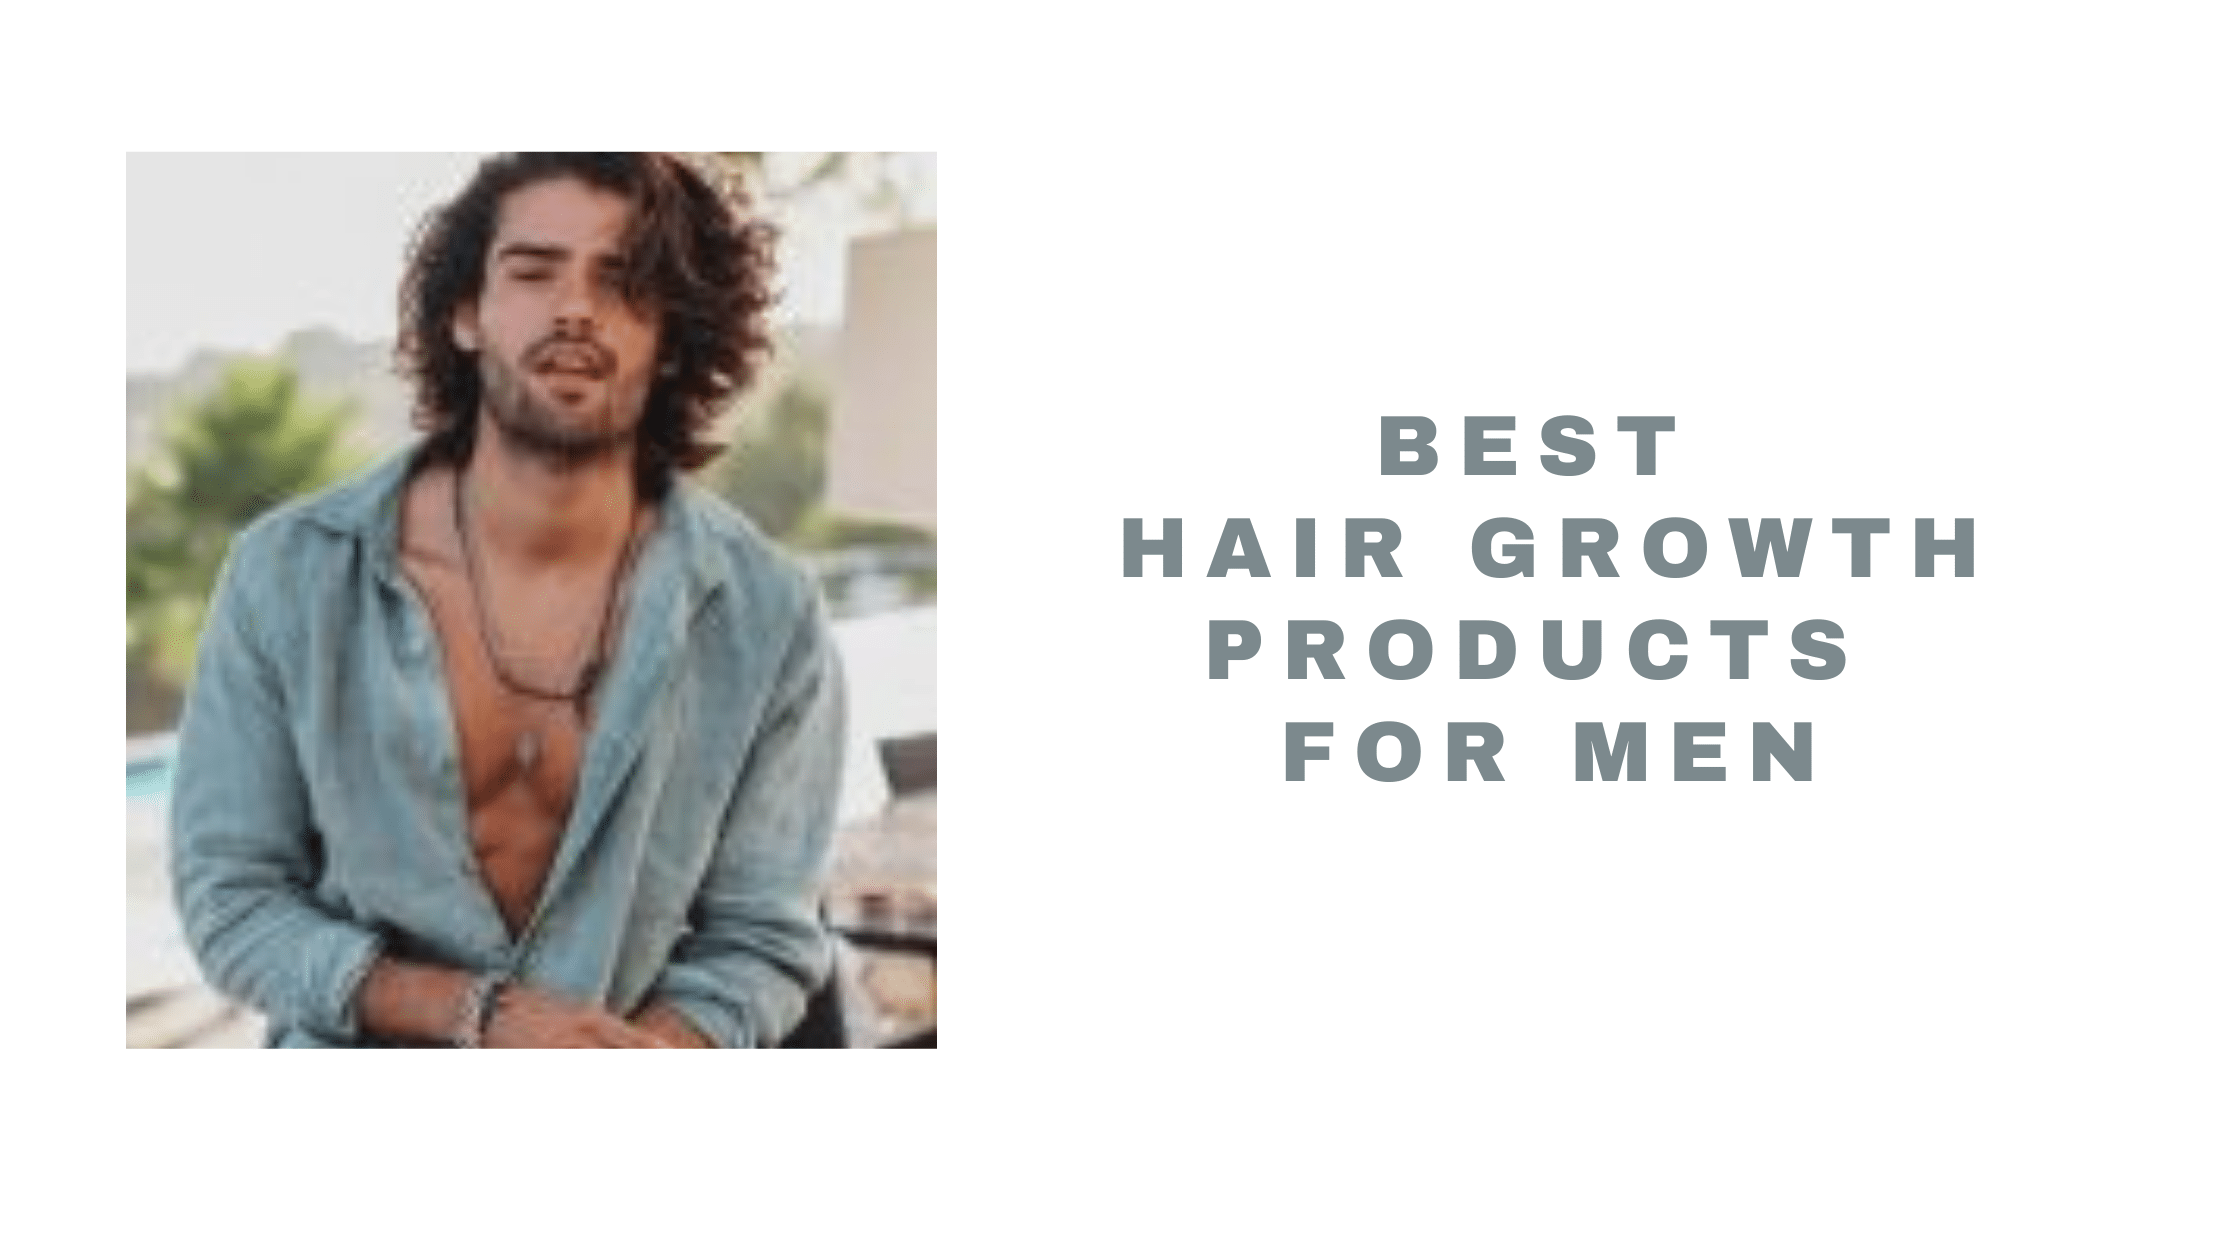 Best Hair Growth Products for Men 2021